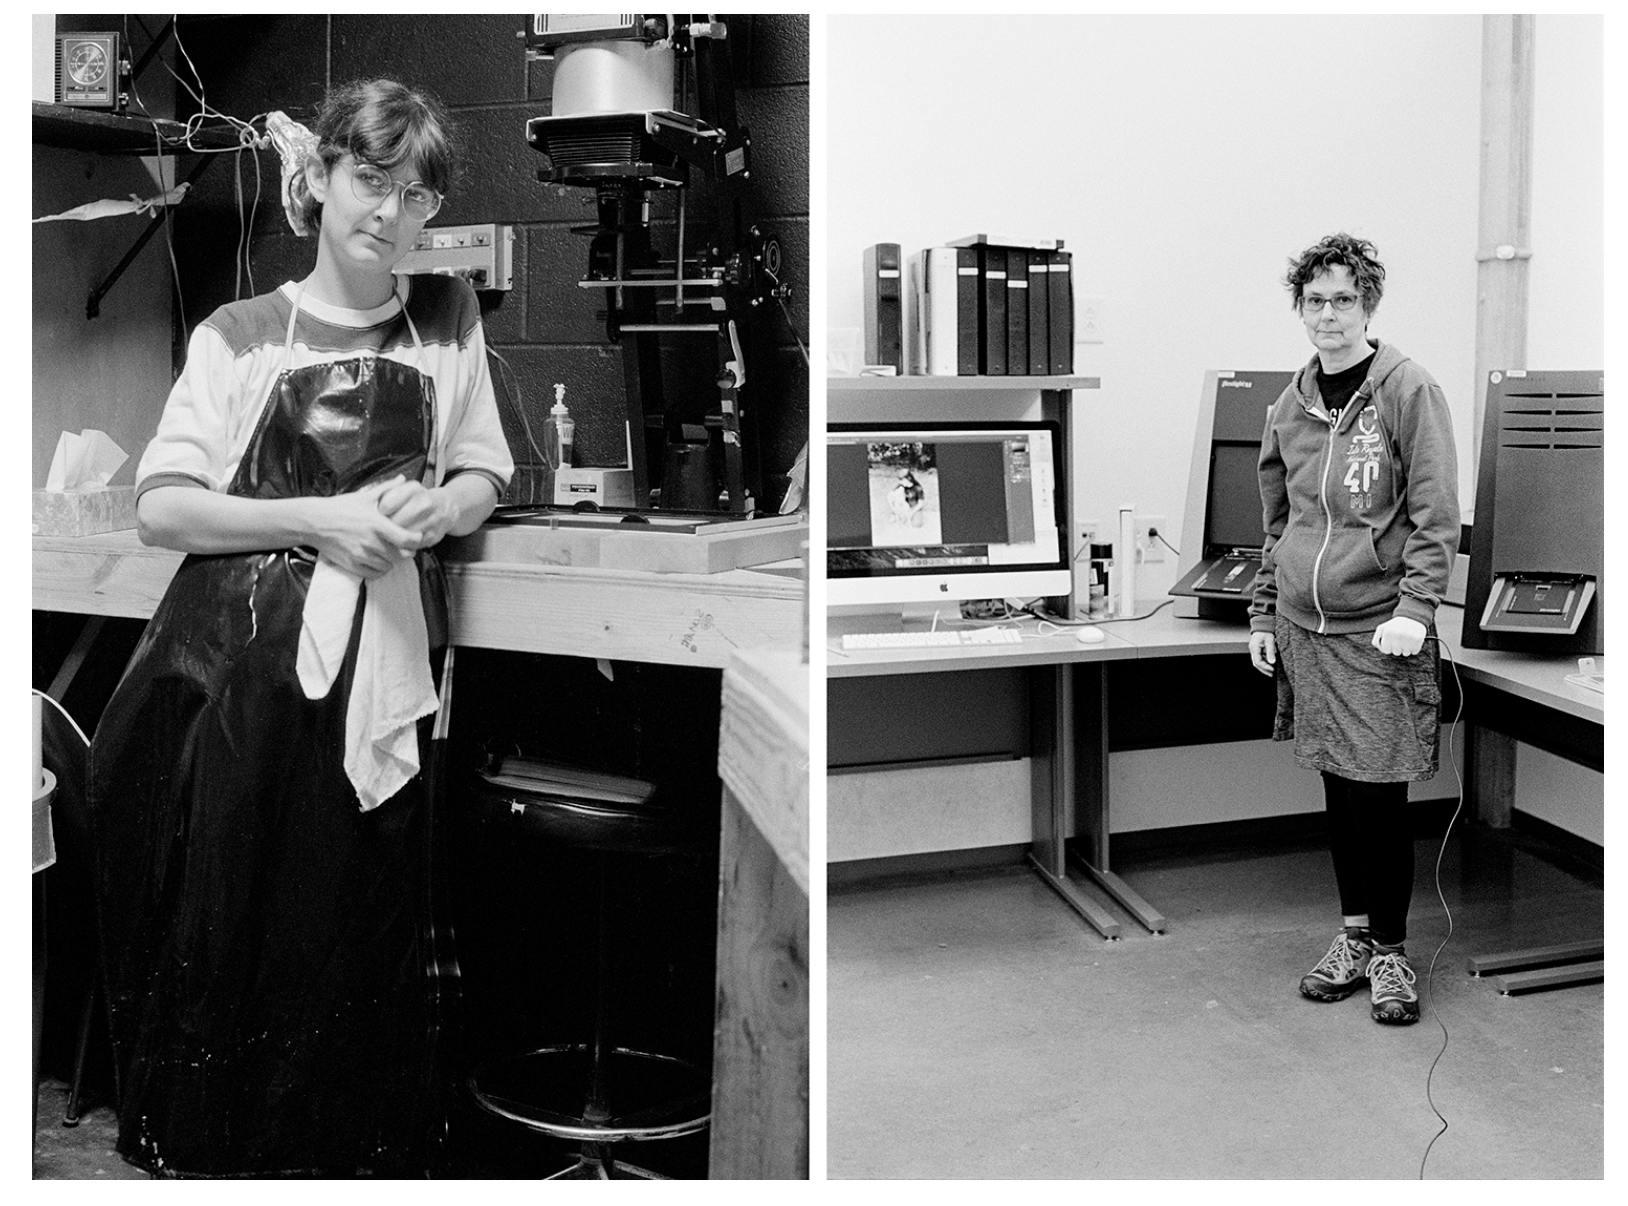 Nancy Floyd, Evolution of the Darkroom 1983 - 2016 (2015)